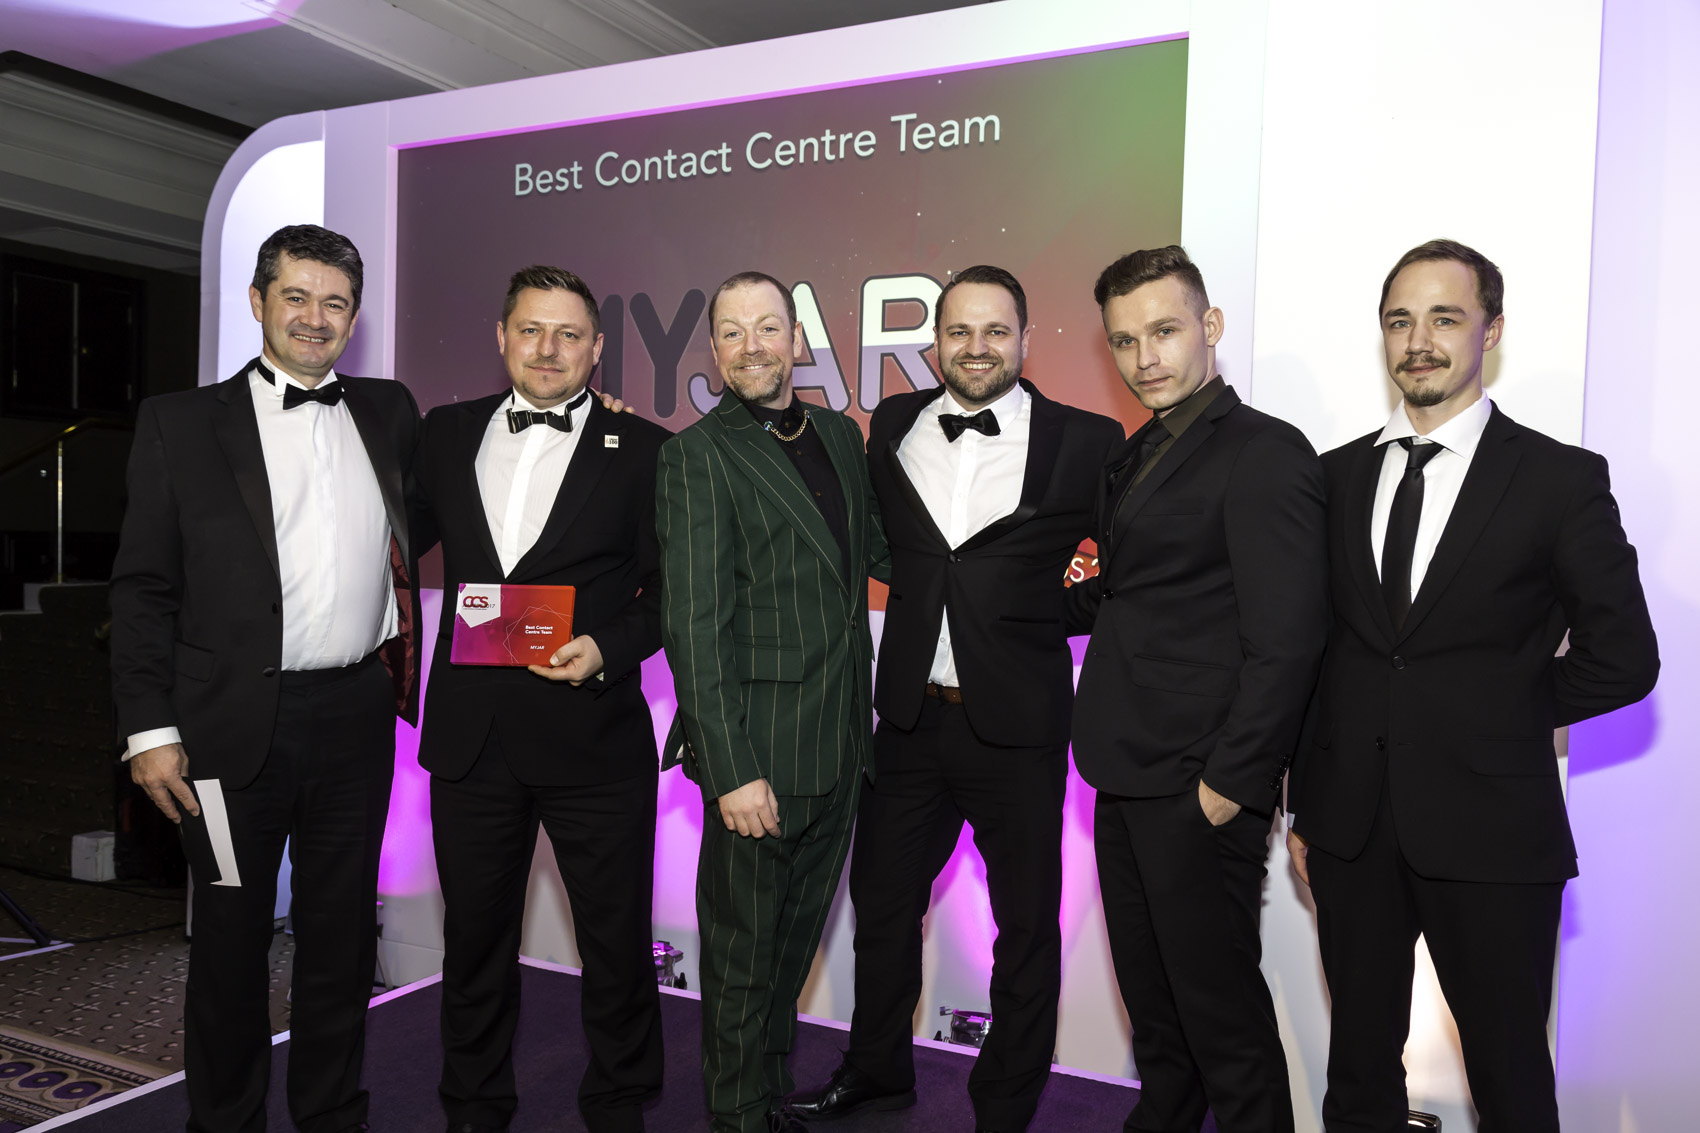 Winners CCS 2017 - 9 Best Contact Centre Team